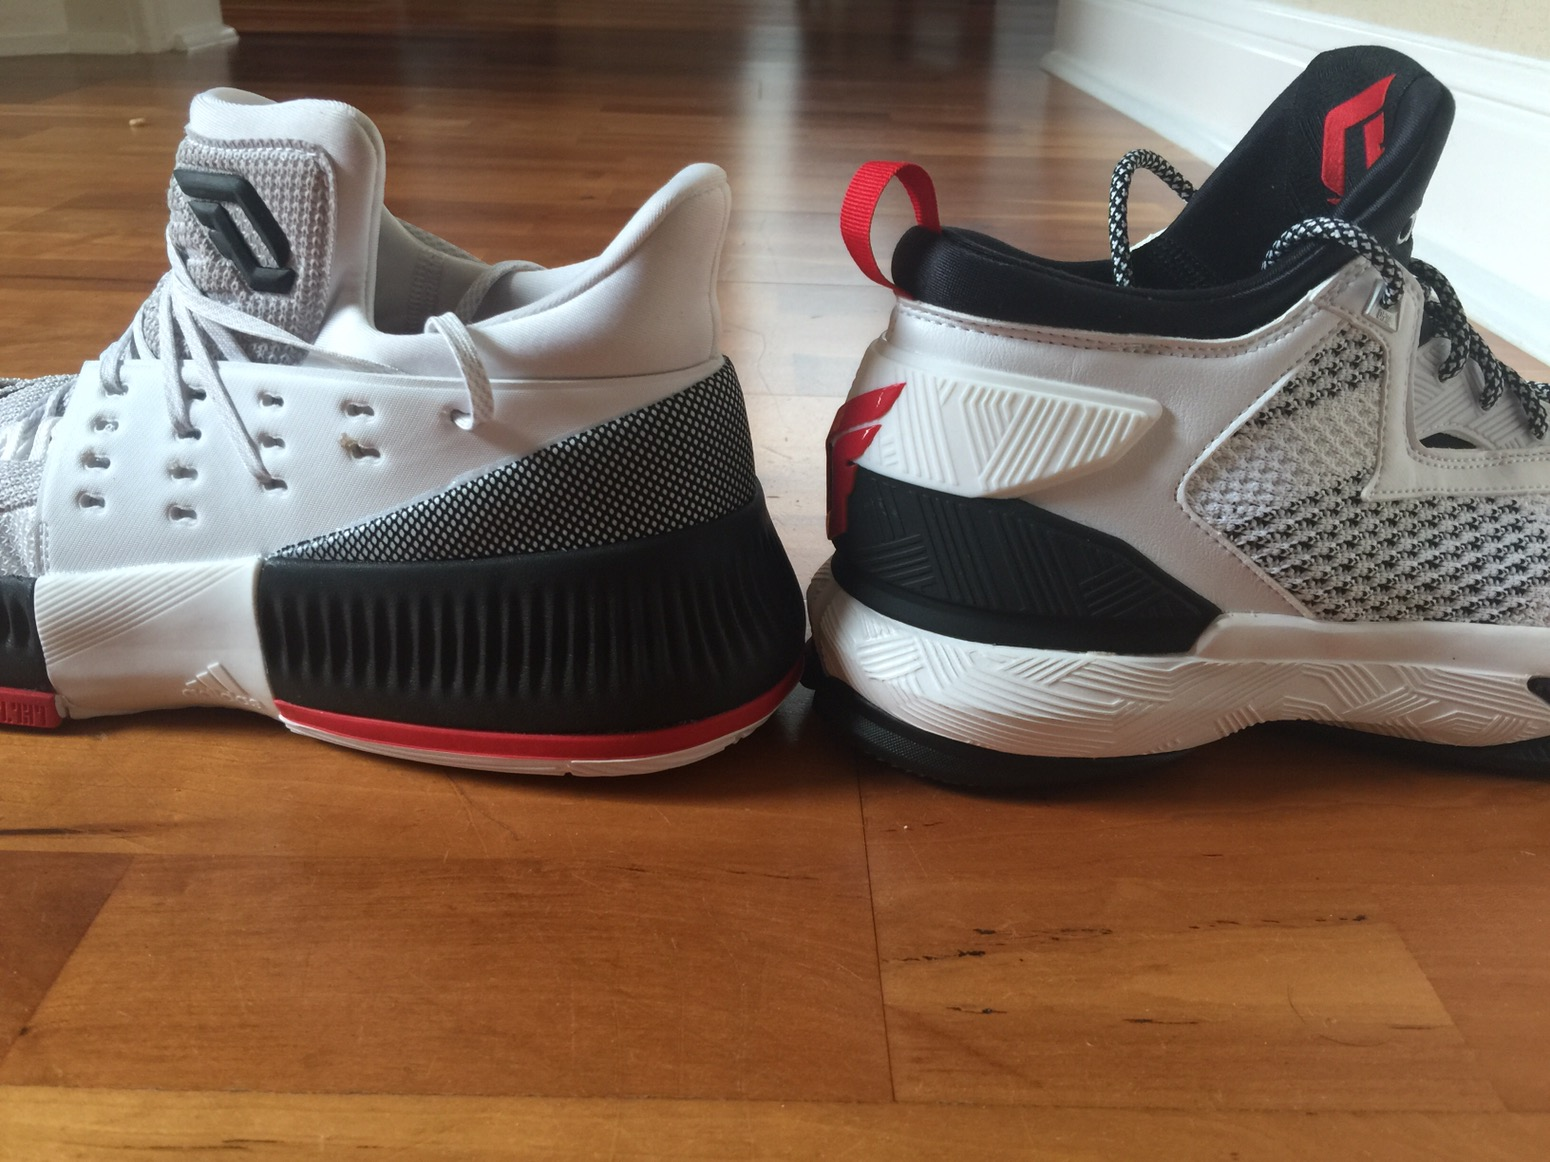 finest selection 88c5c da345 You can see the Dame 3 is slightly lower than the Lillard 2